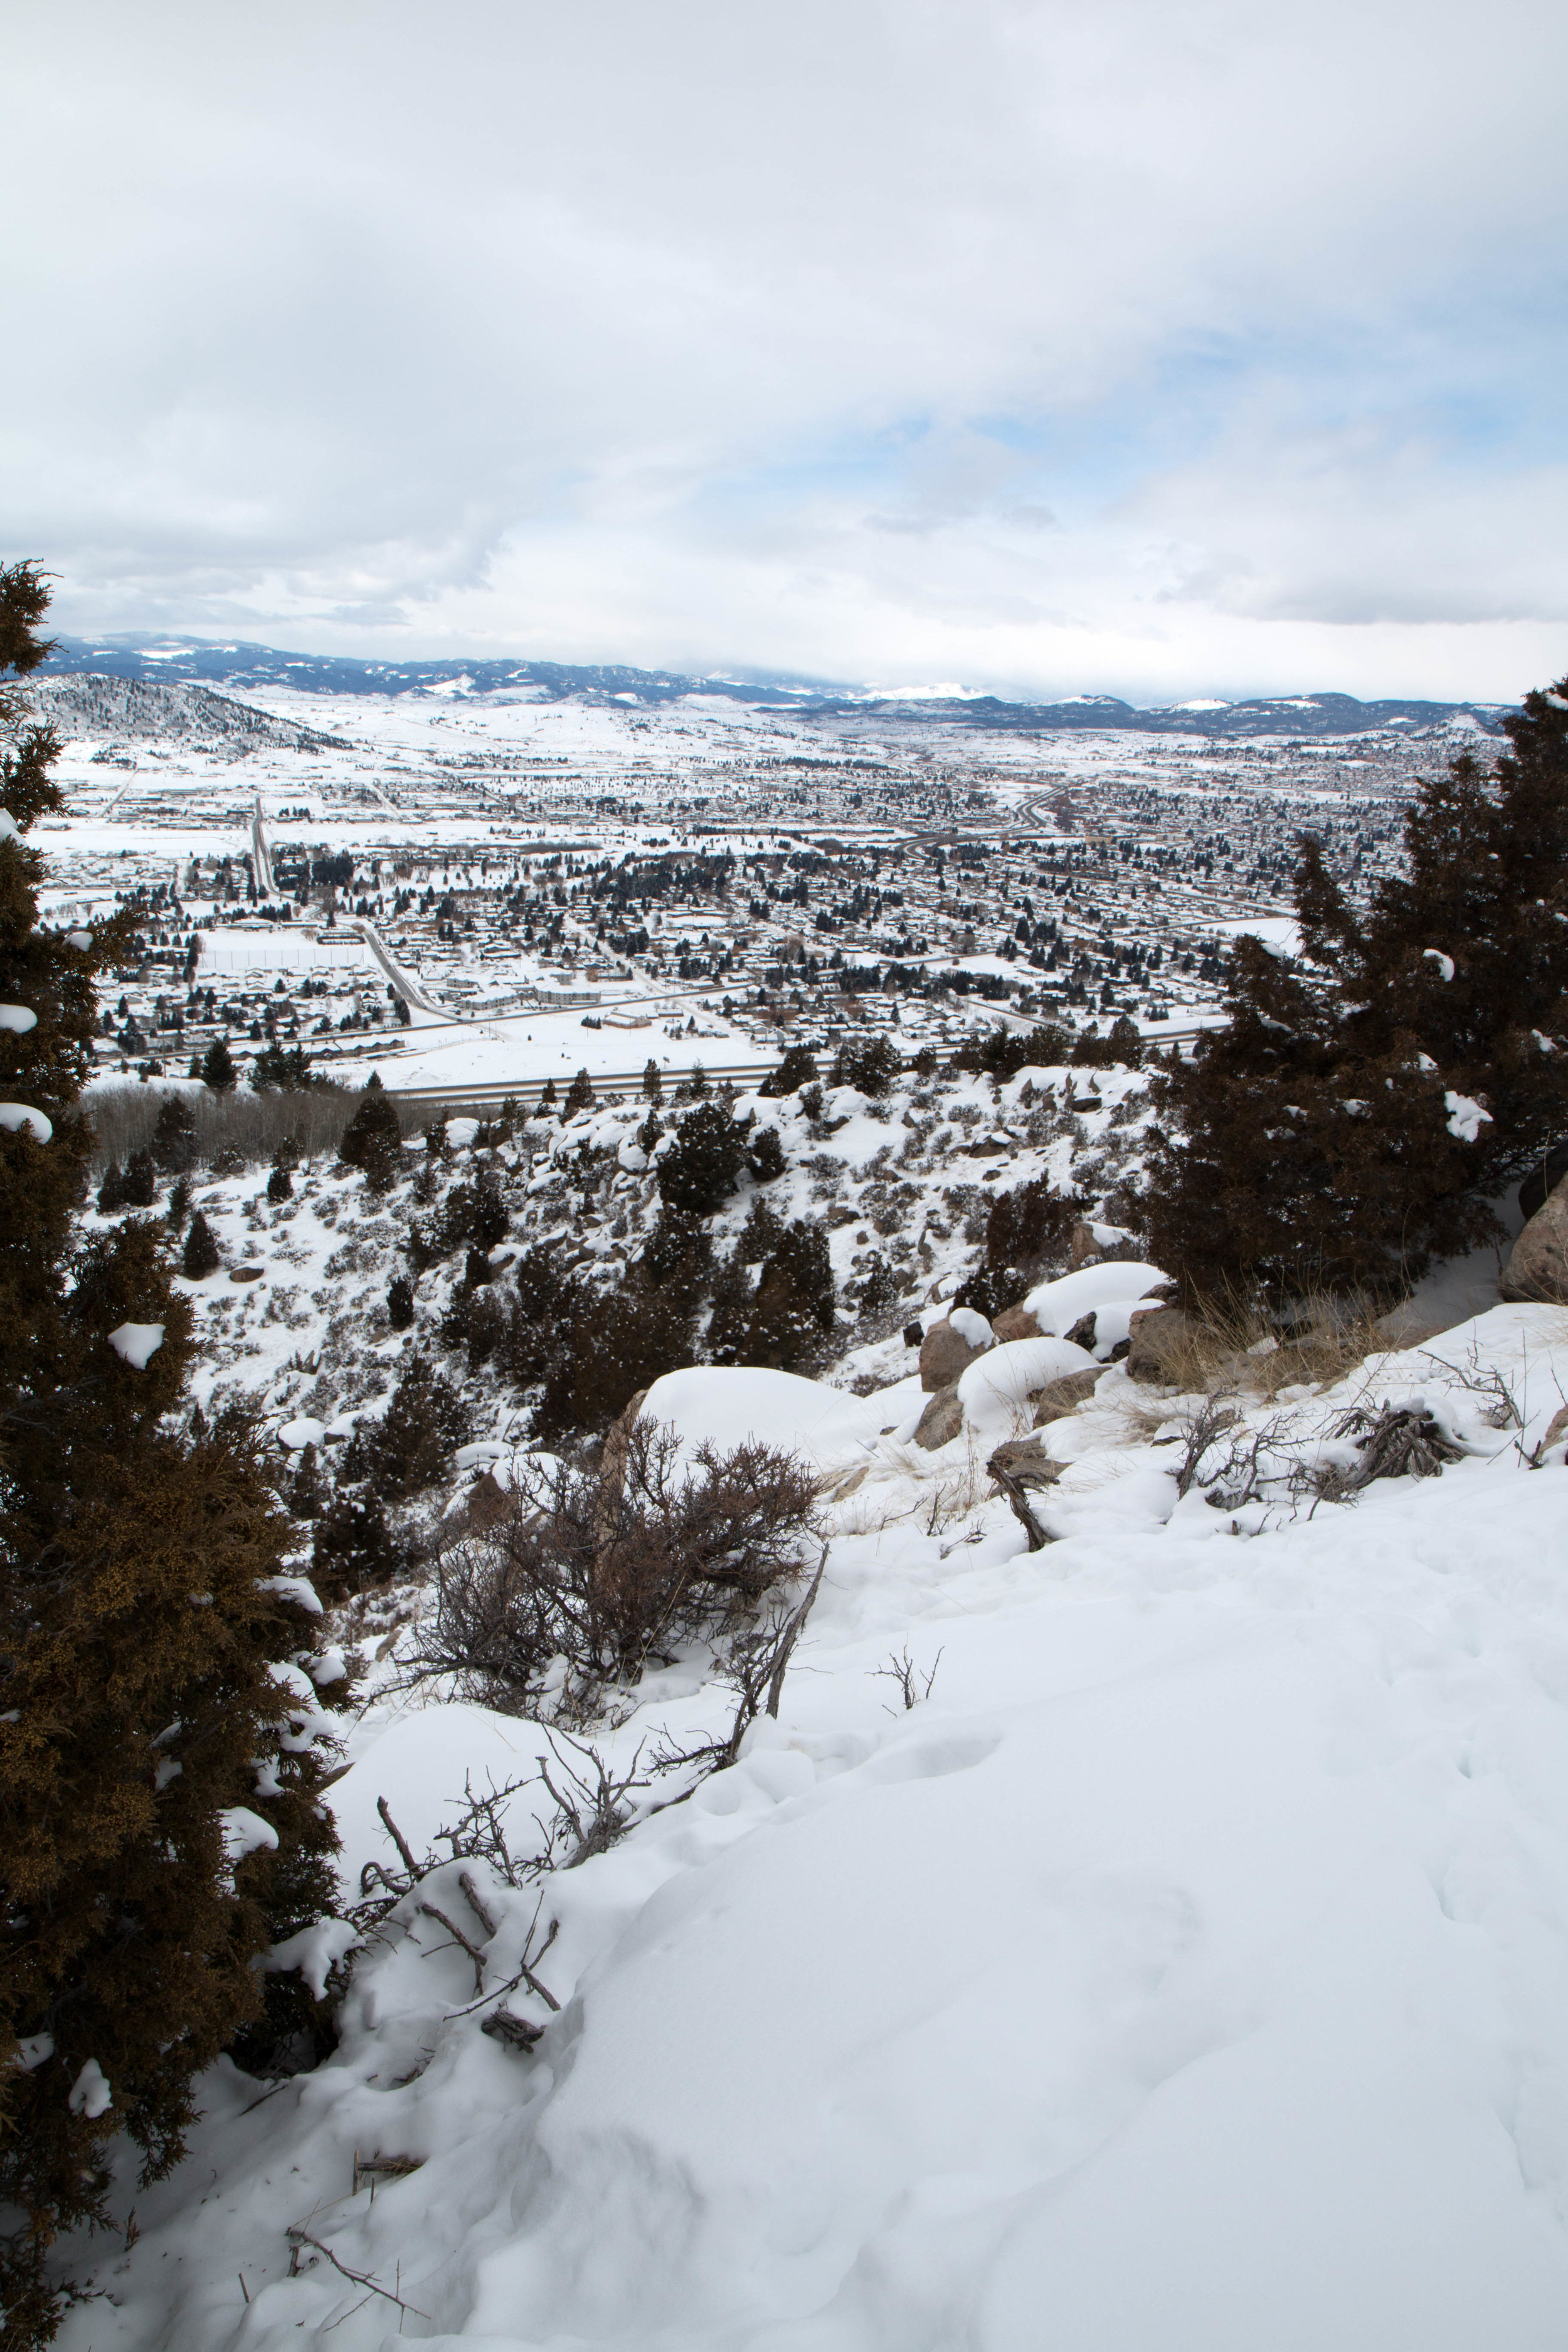 Maud S. Canyon Loop in Butte, Montana